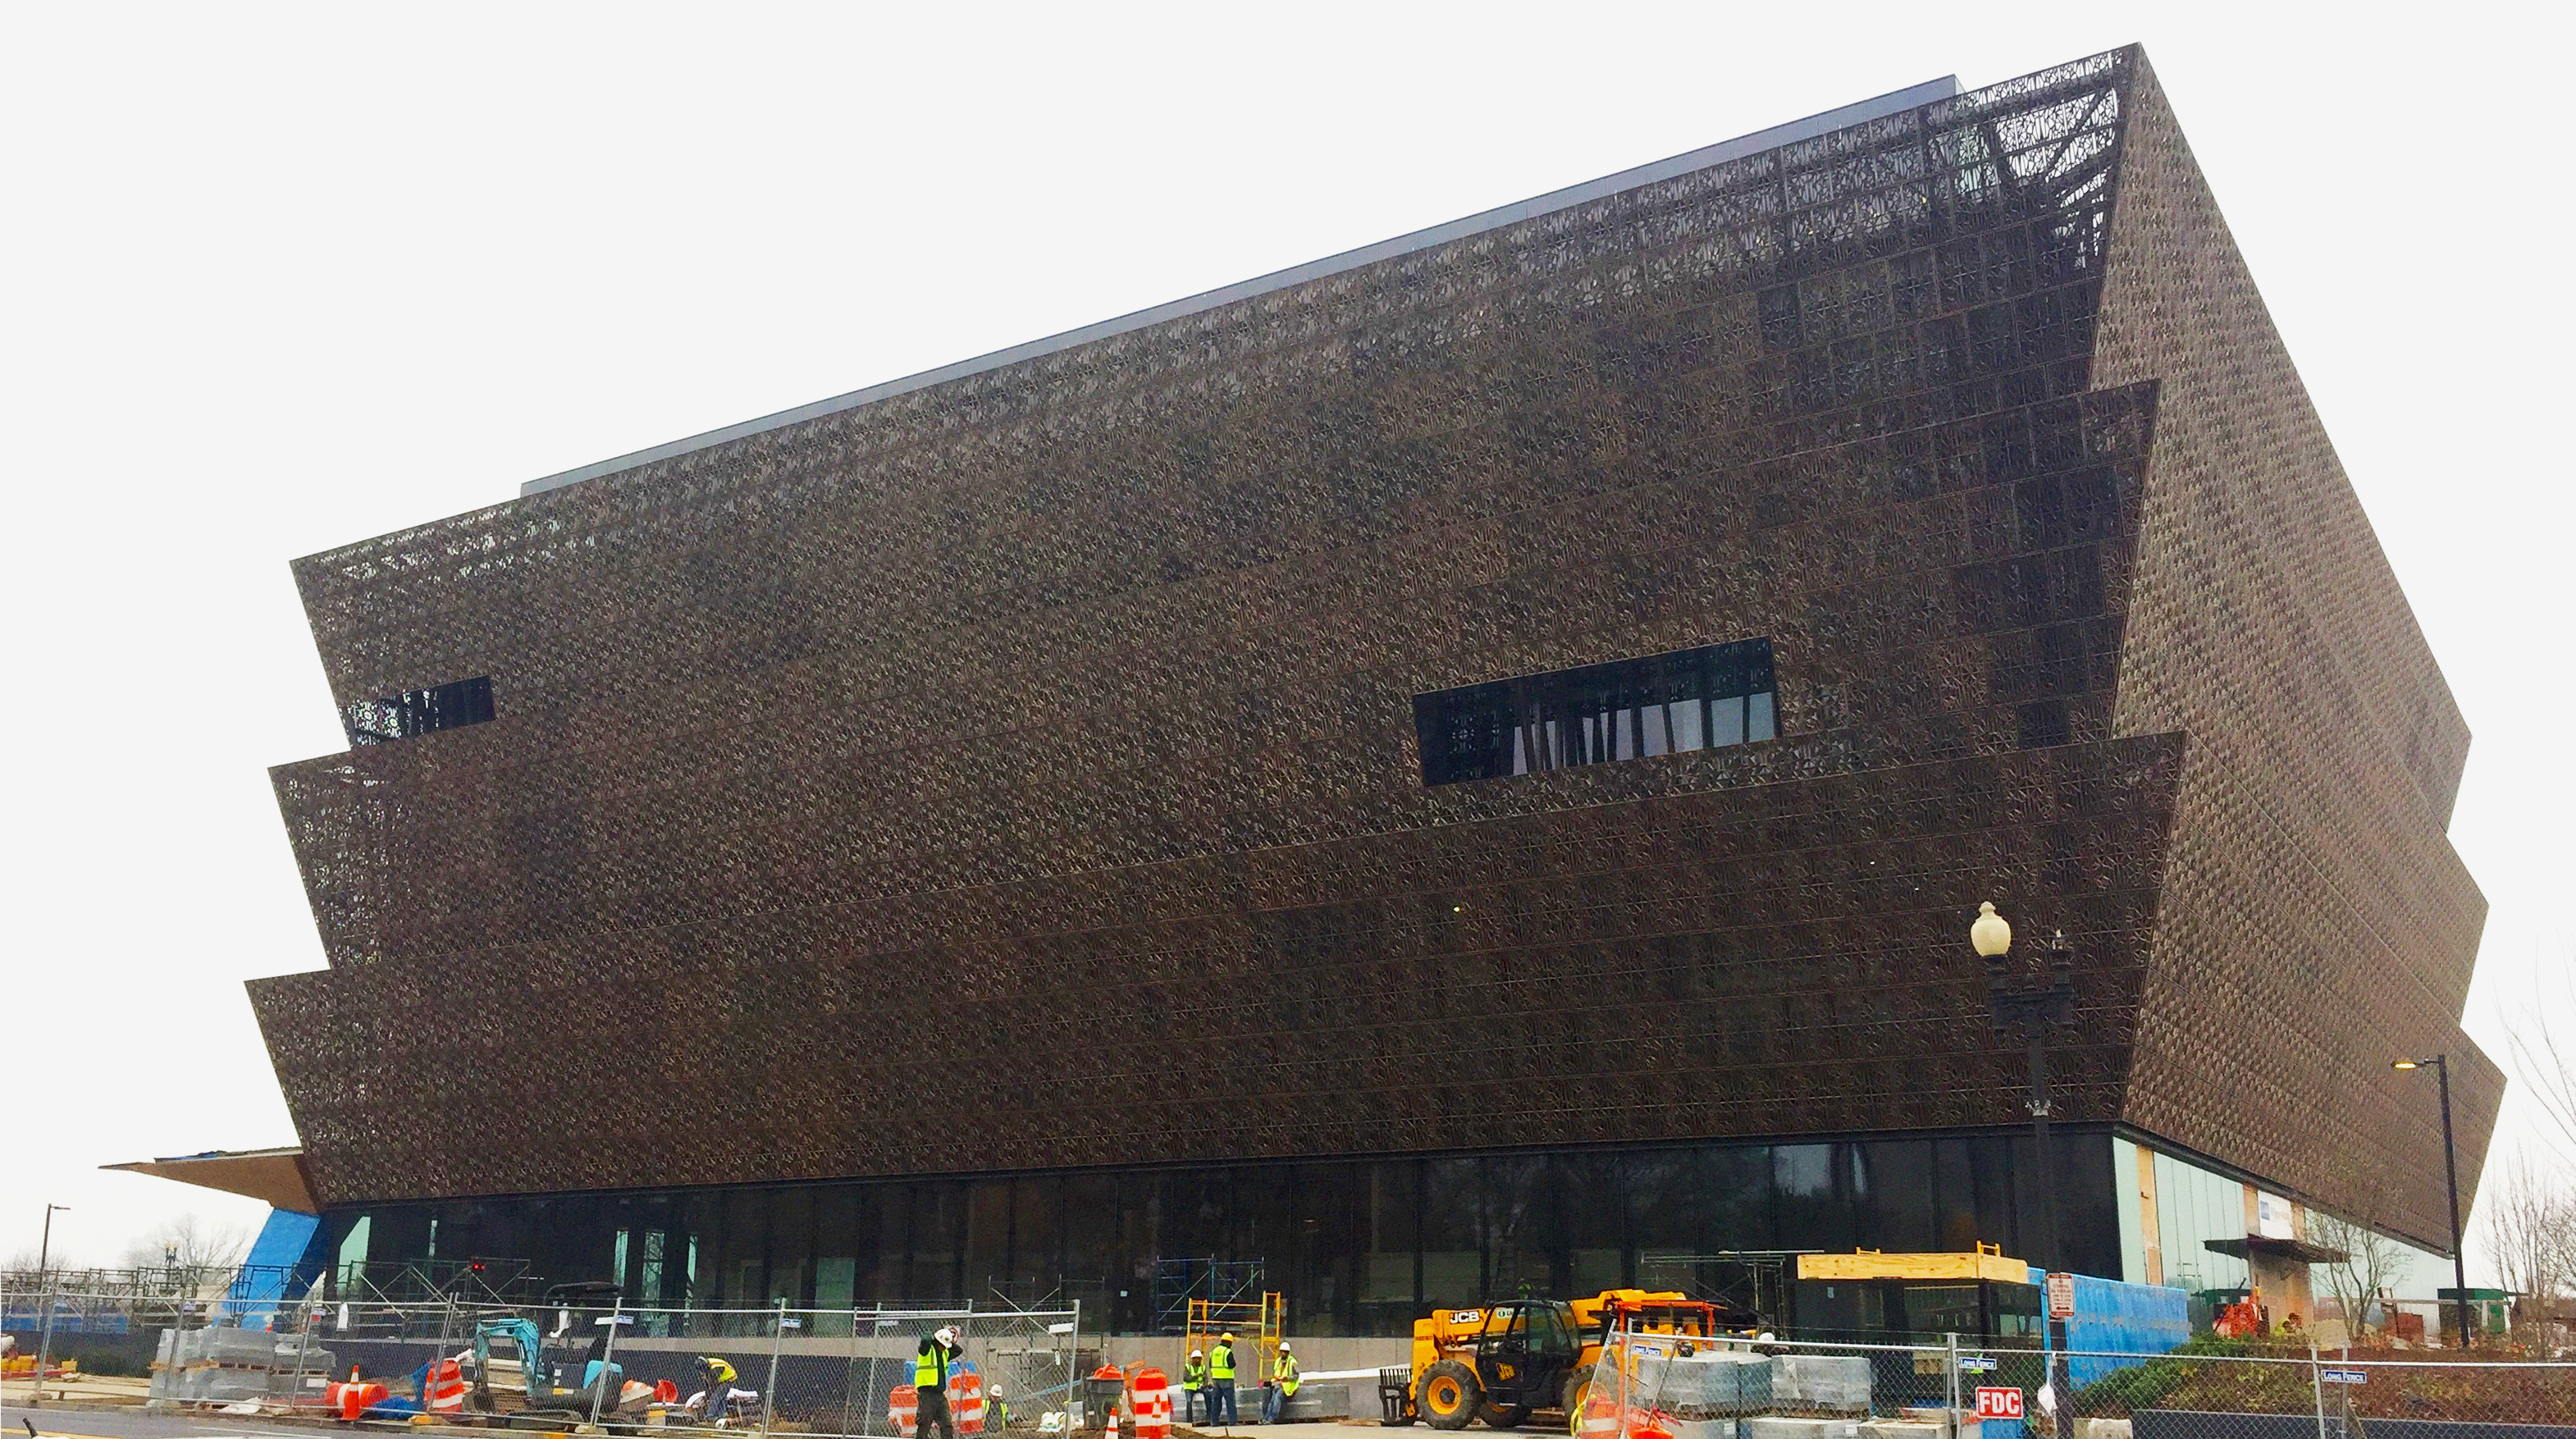 The National African American Museum of History and Culture is expected to open in the fall of 2016. Capital News Service photo by Alessia Grunberger